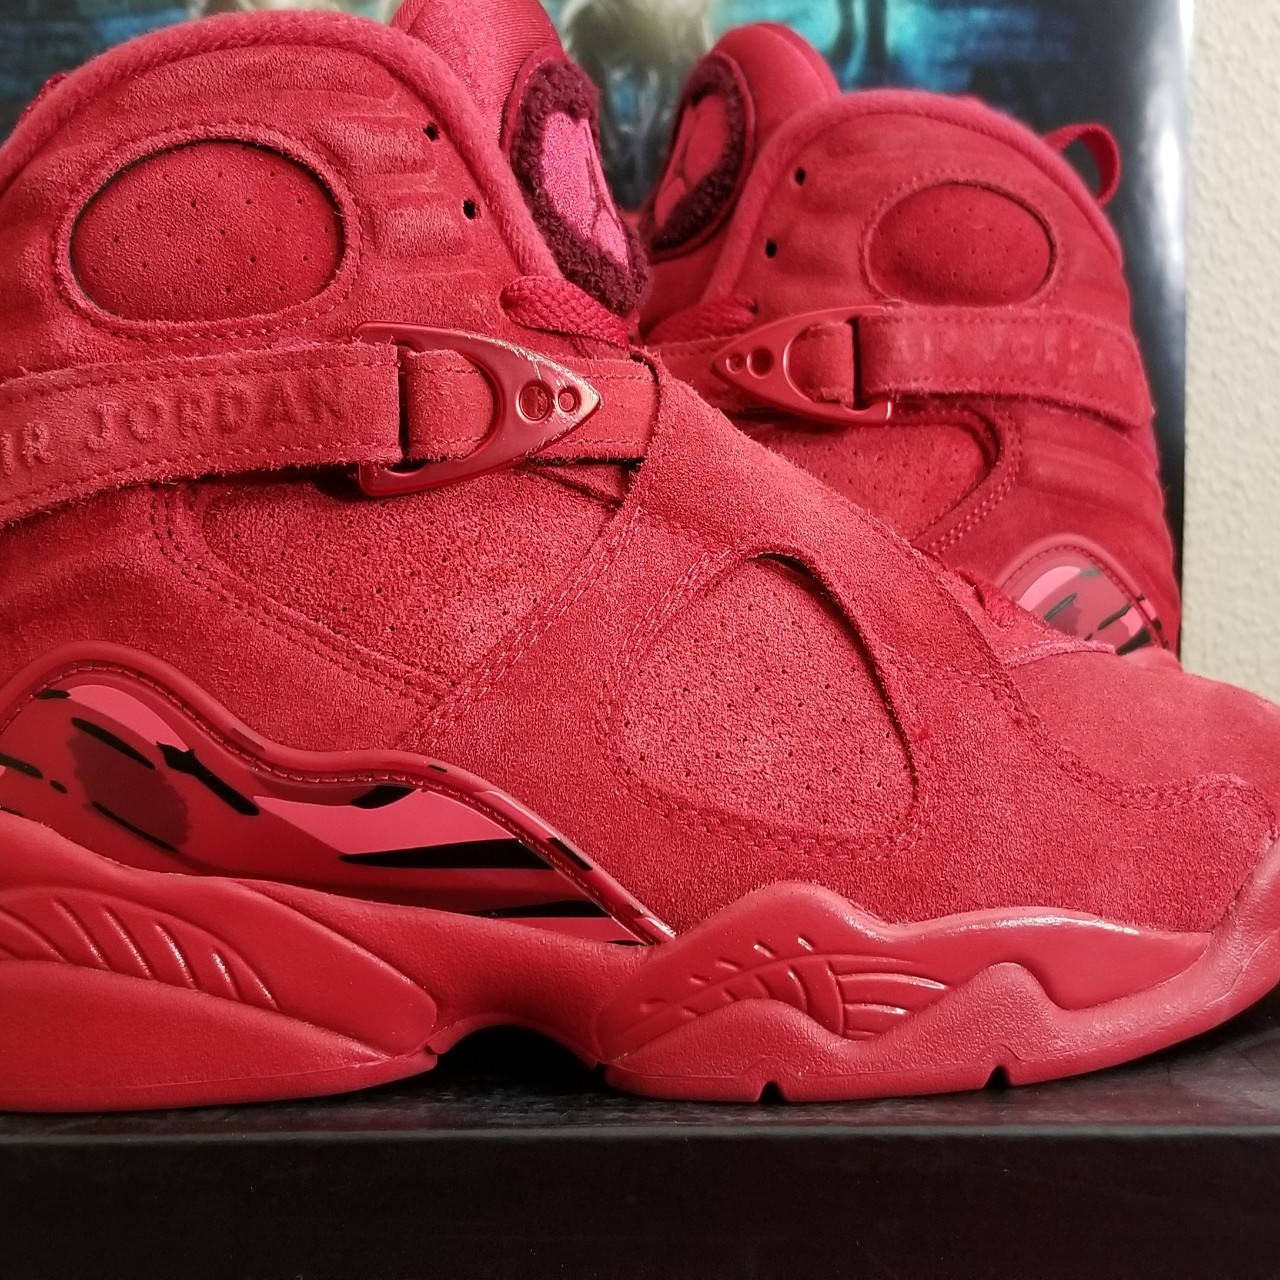 super popular b9bbf ba4a3 Air Jordan 8 Valentines day size 8.5 Used, very good... - Depop